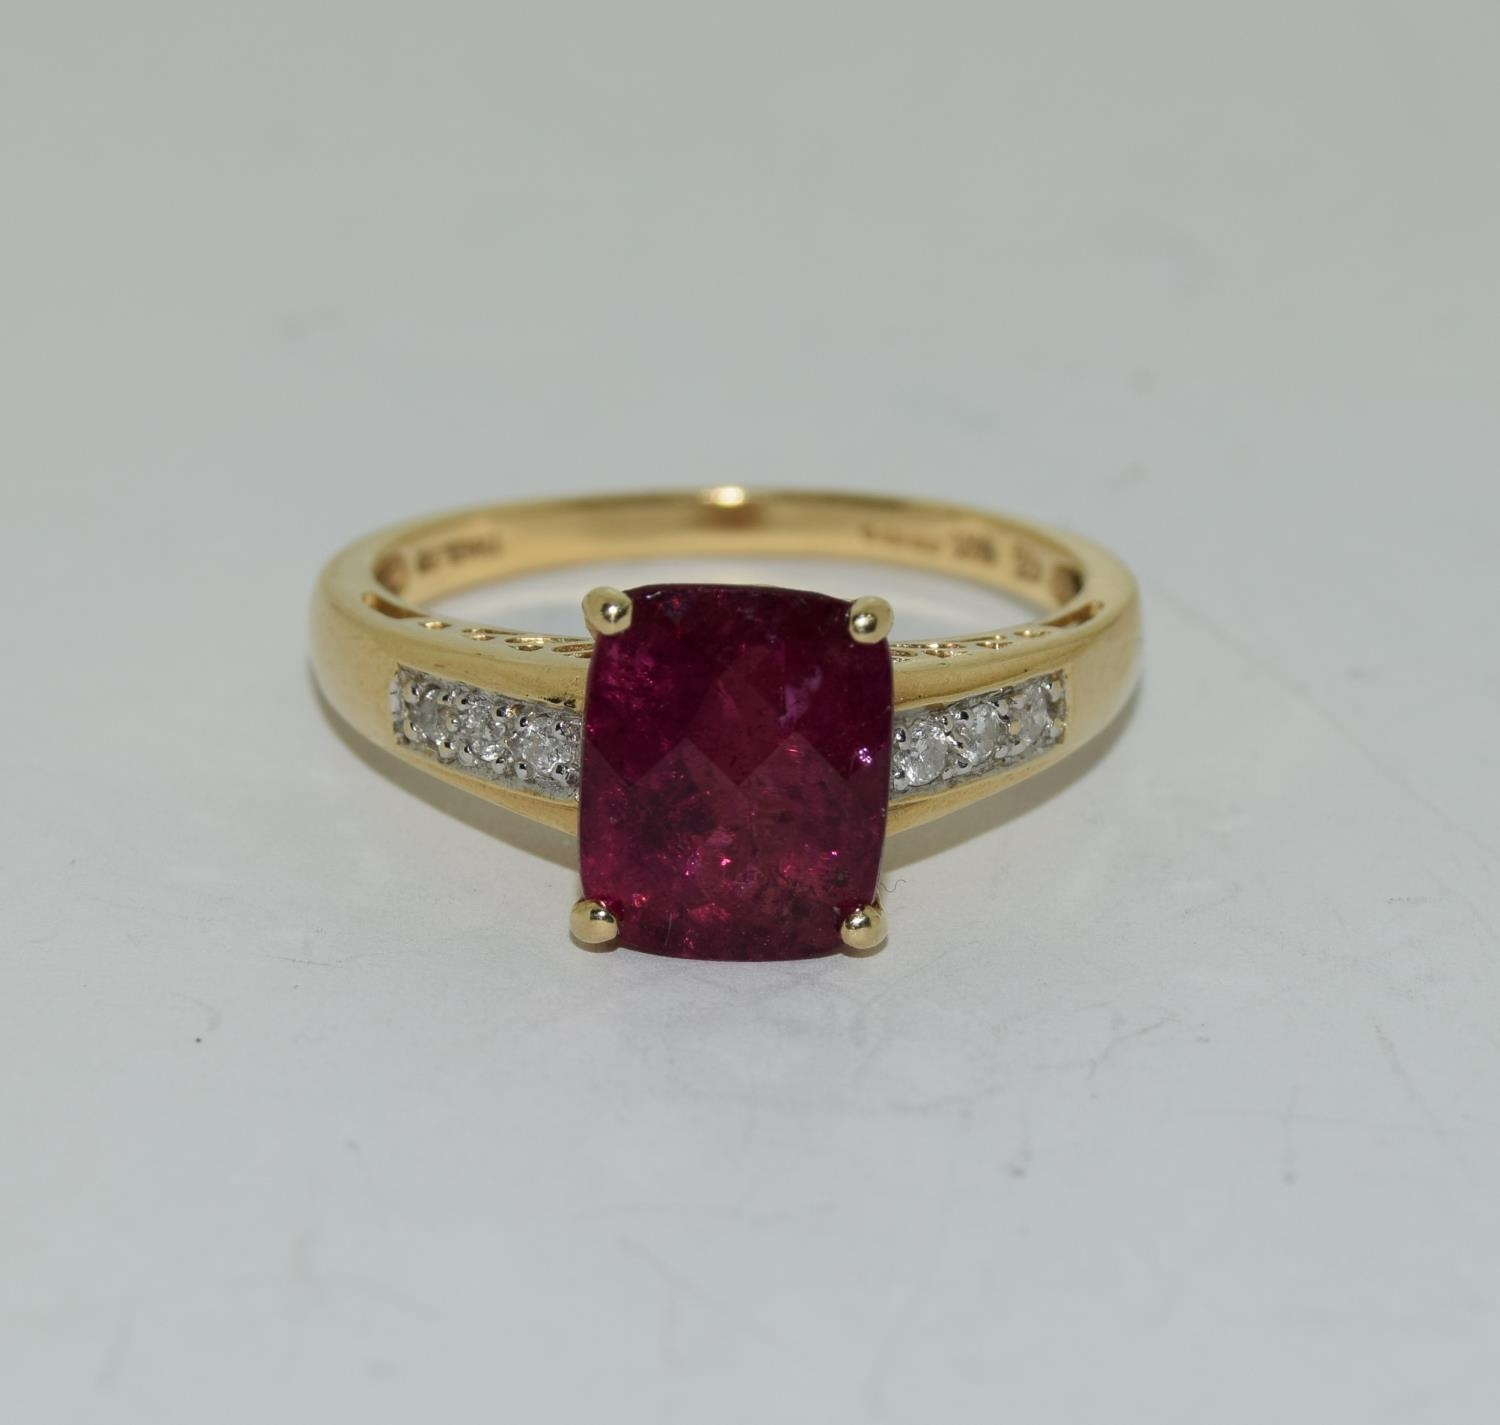 14ct gold ladies ruby and diamond ring ,ruby approx 3ct daimonds to the shoulders size T - Image 6 of 6